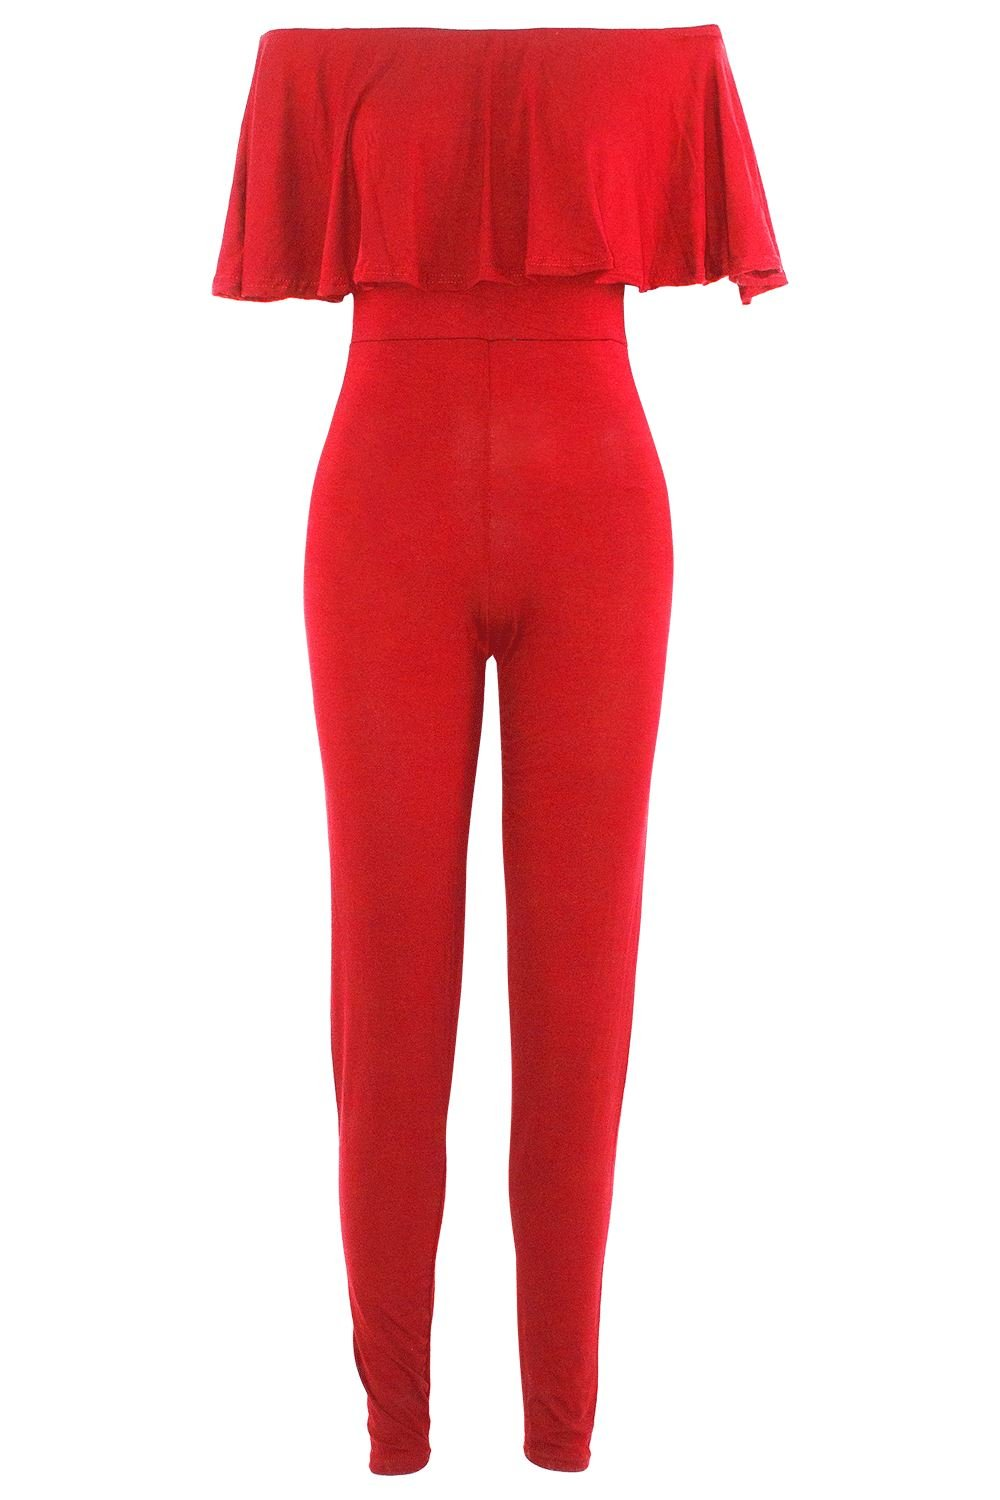 Be Jealous Womens Ladies Peplum Frill Off The Shoulder All In One Bardot Jumpsuit Playsuit UK Plus Size 8-22